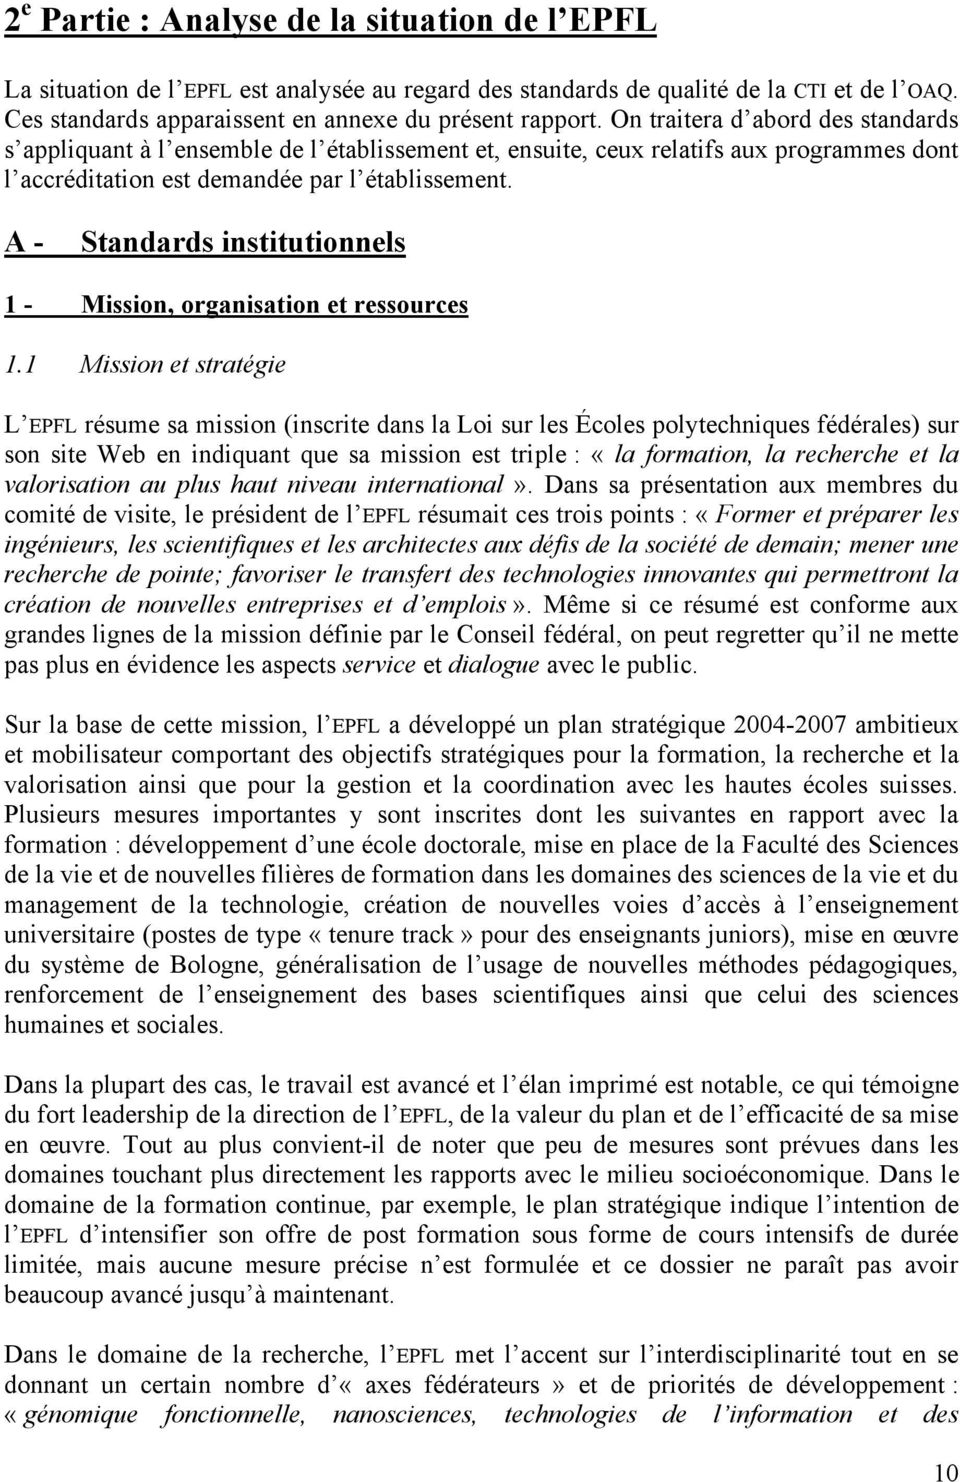 A - Standards institutionnels 1 - Mission, organisation et ressources 1.